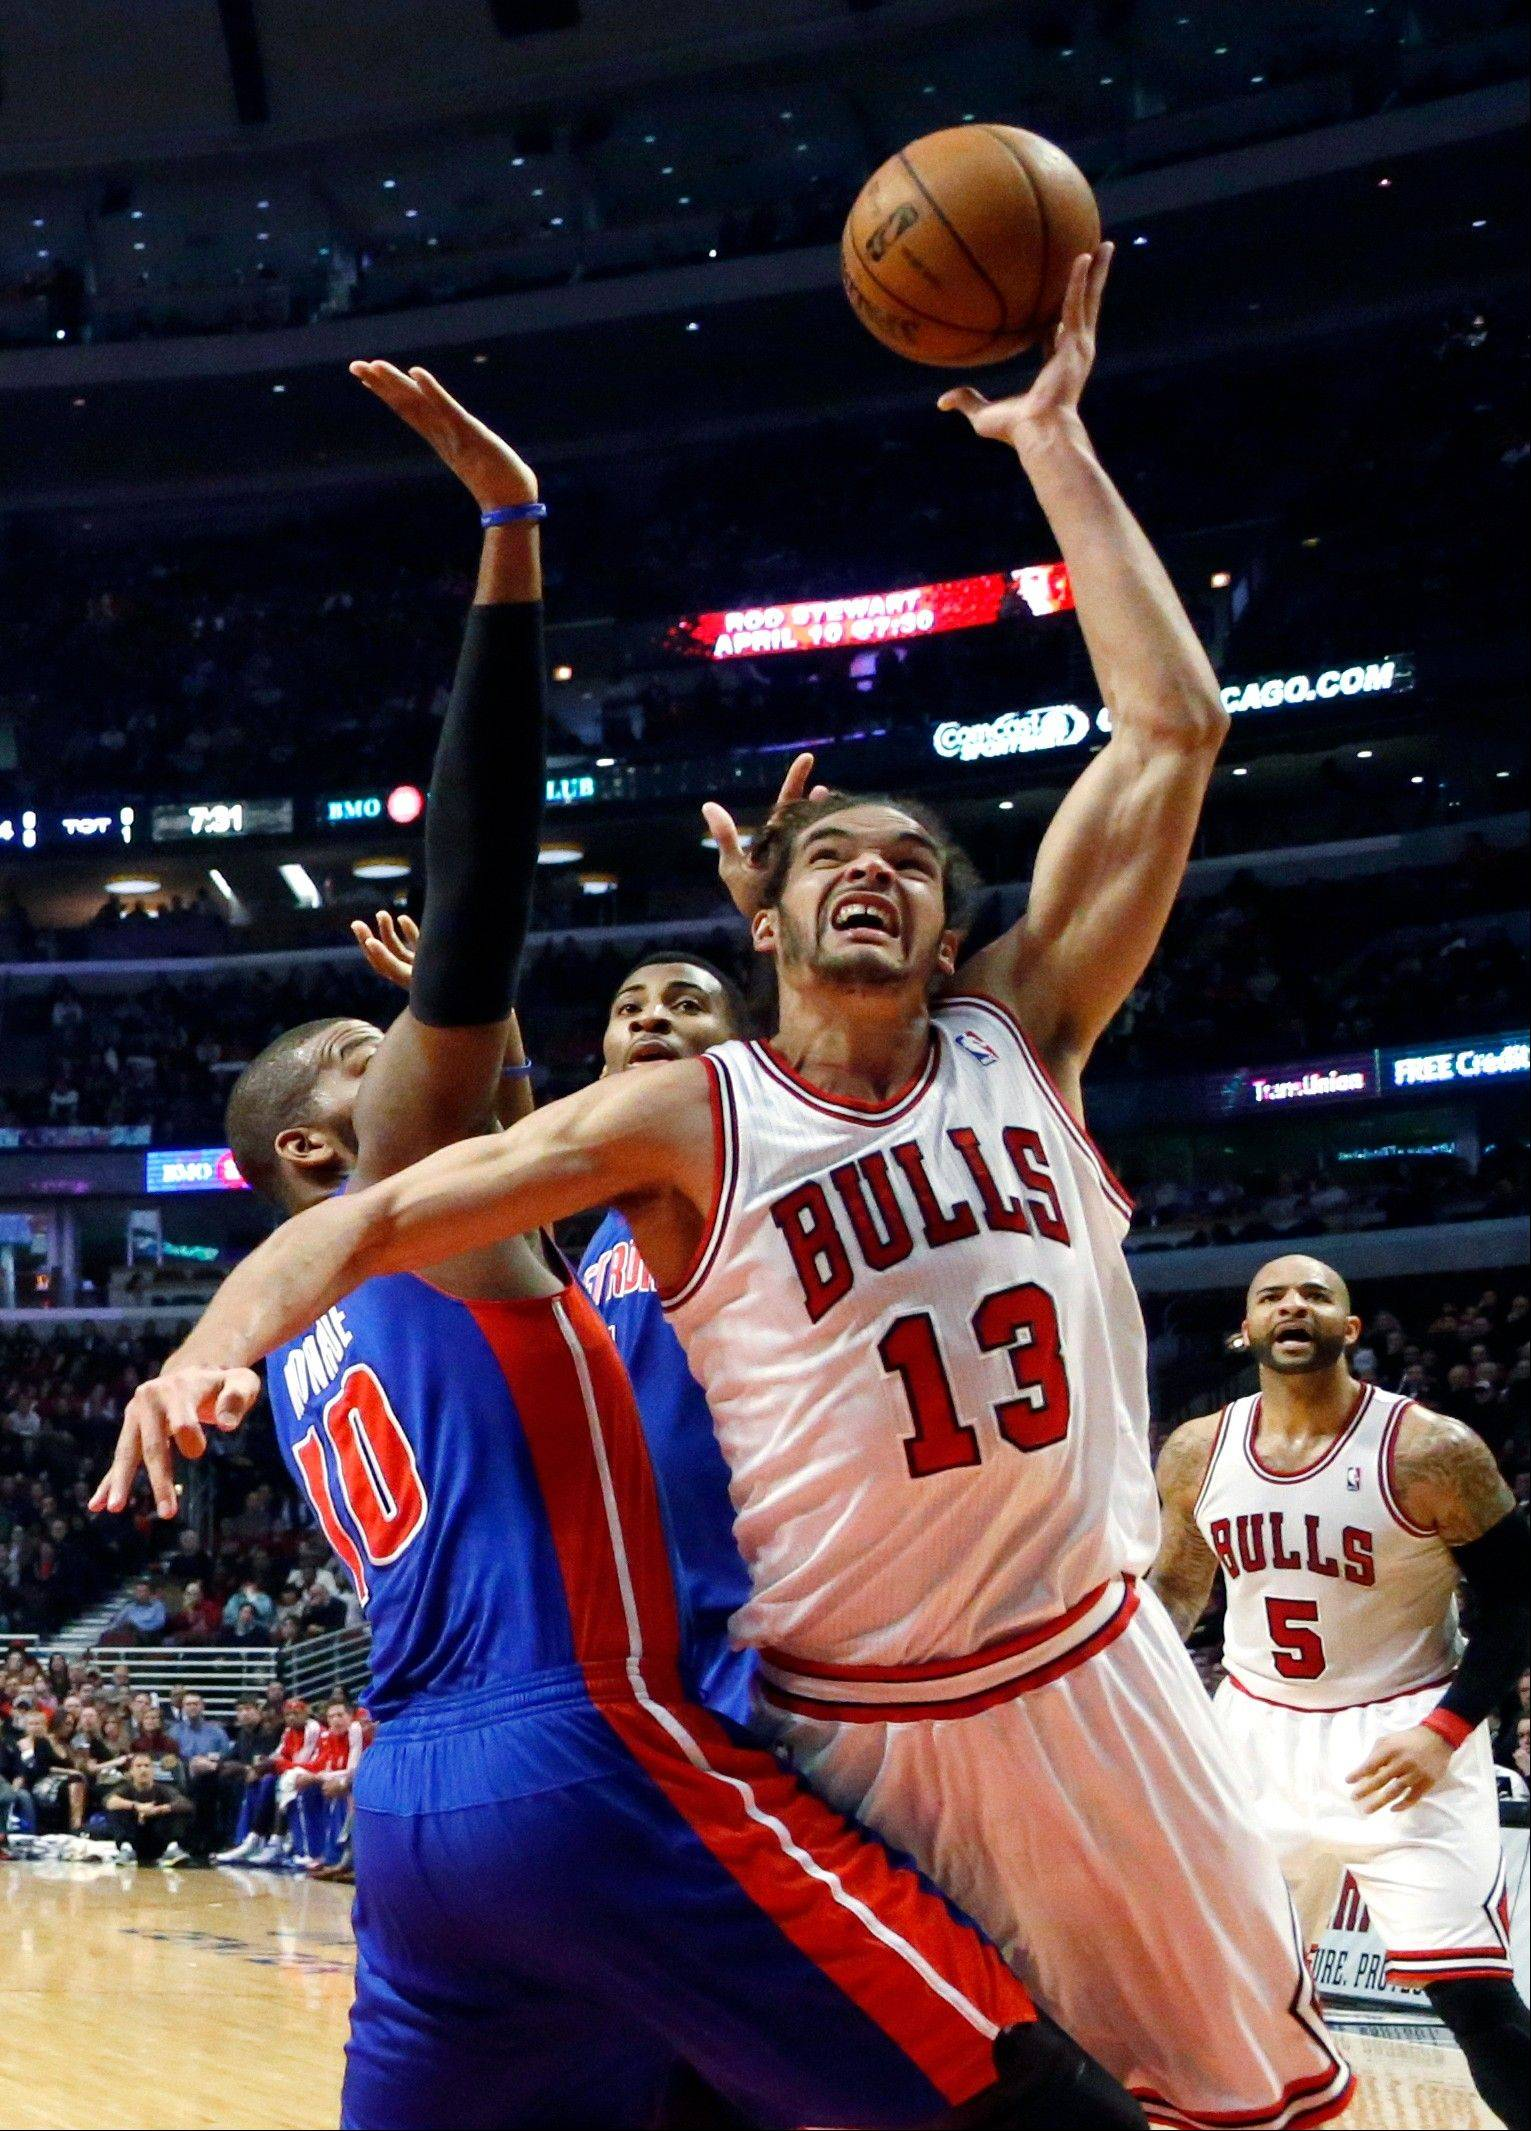 Chicago Bulls center Joakim Noah (13) shoots over Detroit Pistons center Greg Monroe (10) during the first half of an NBA basketball game, Wednesday, Jan. 23, 2013, in Chicago. Noah could be namedwhen the NBA's all-star reserves are announced Thursday on TNT, starting a 6 p.m.